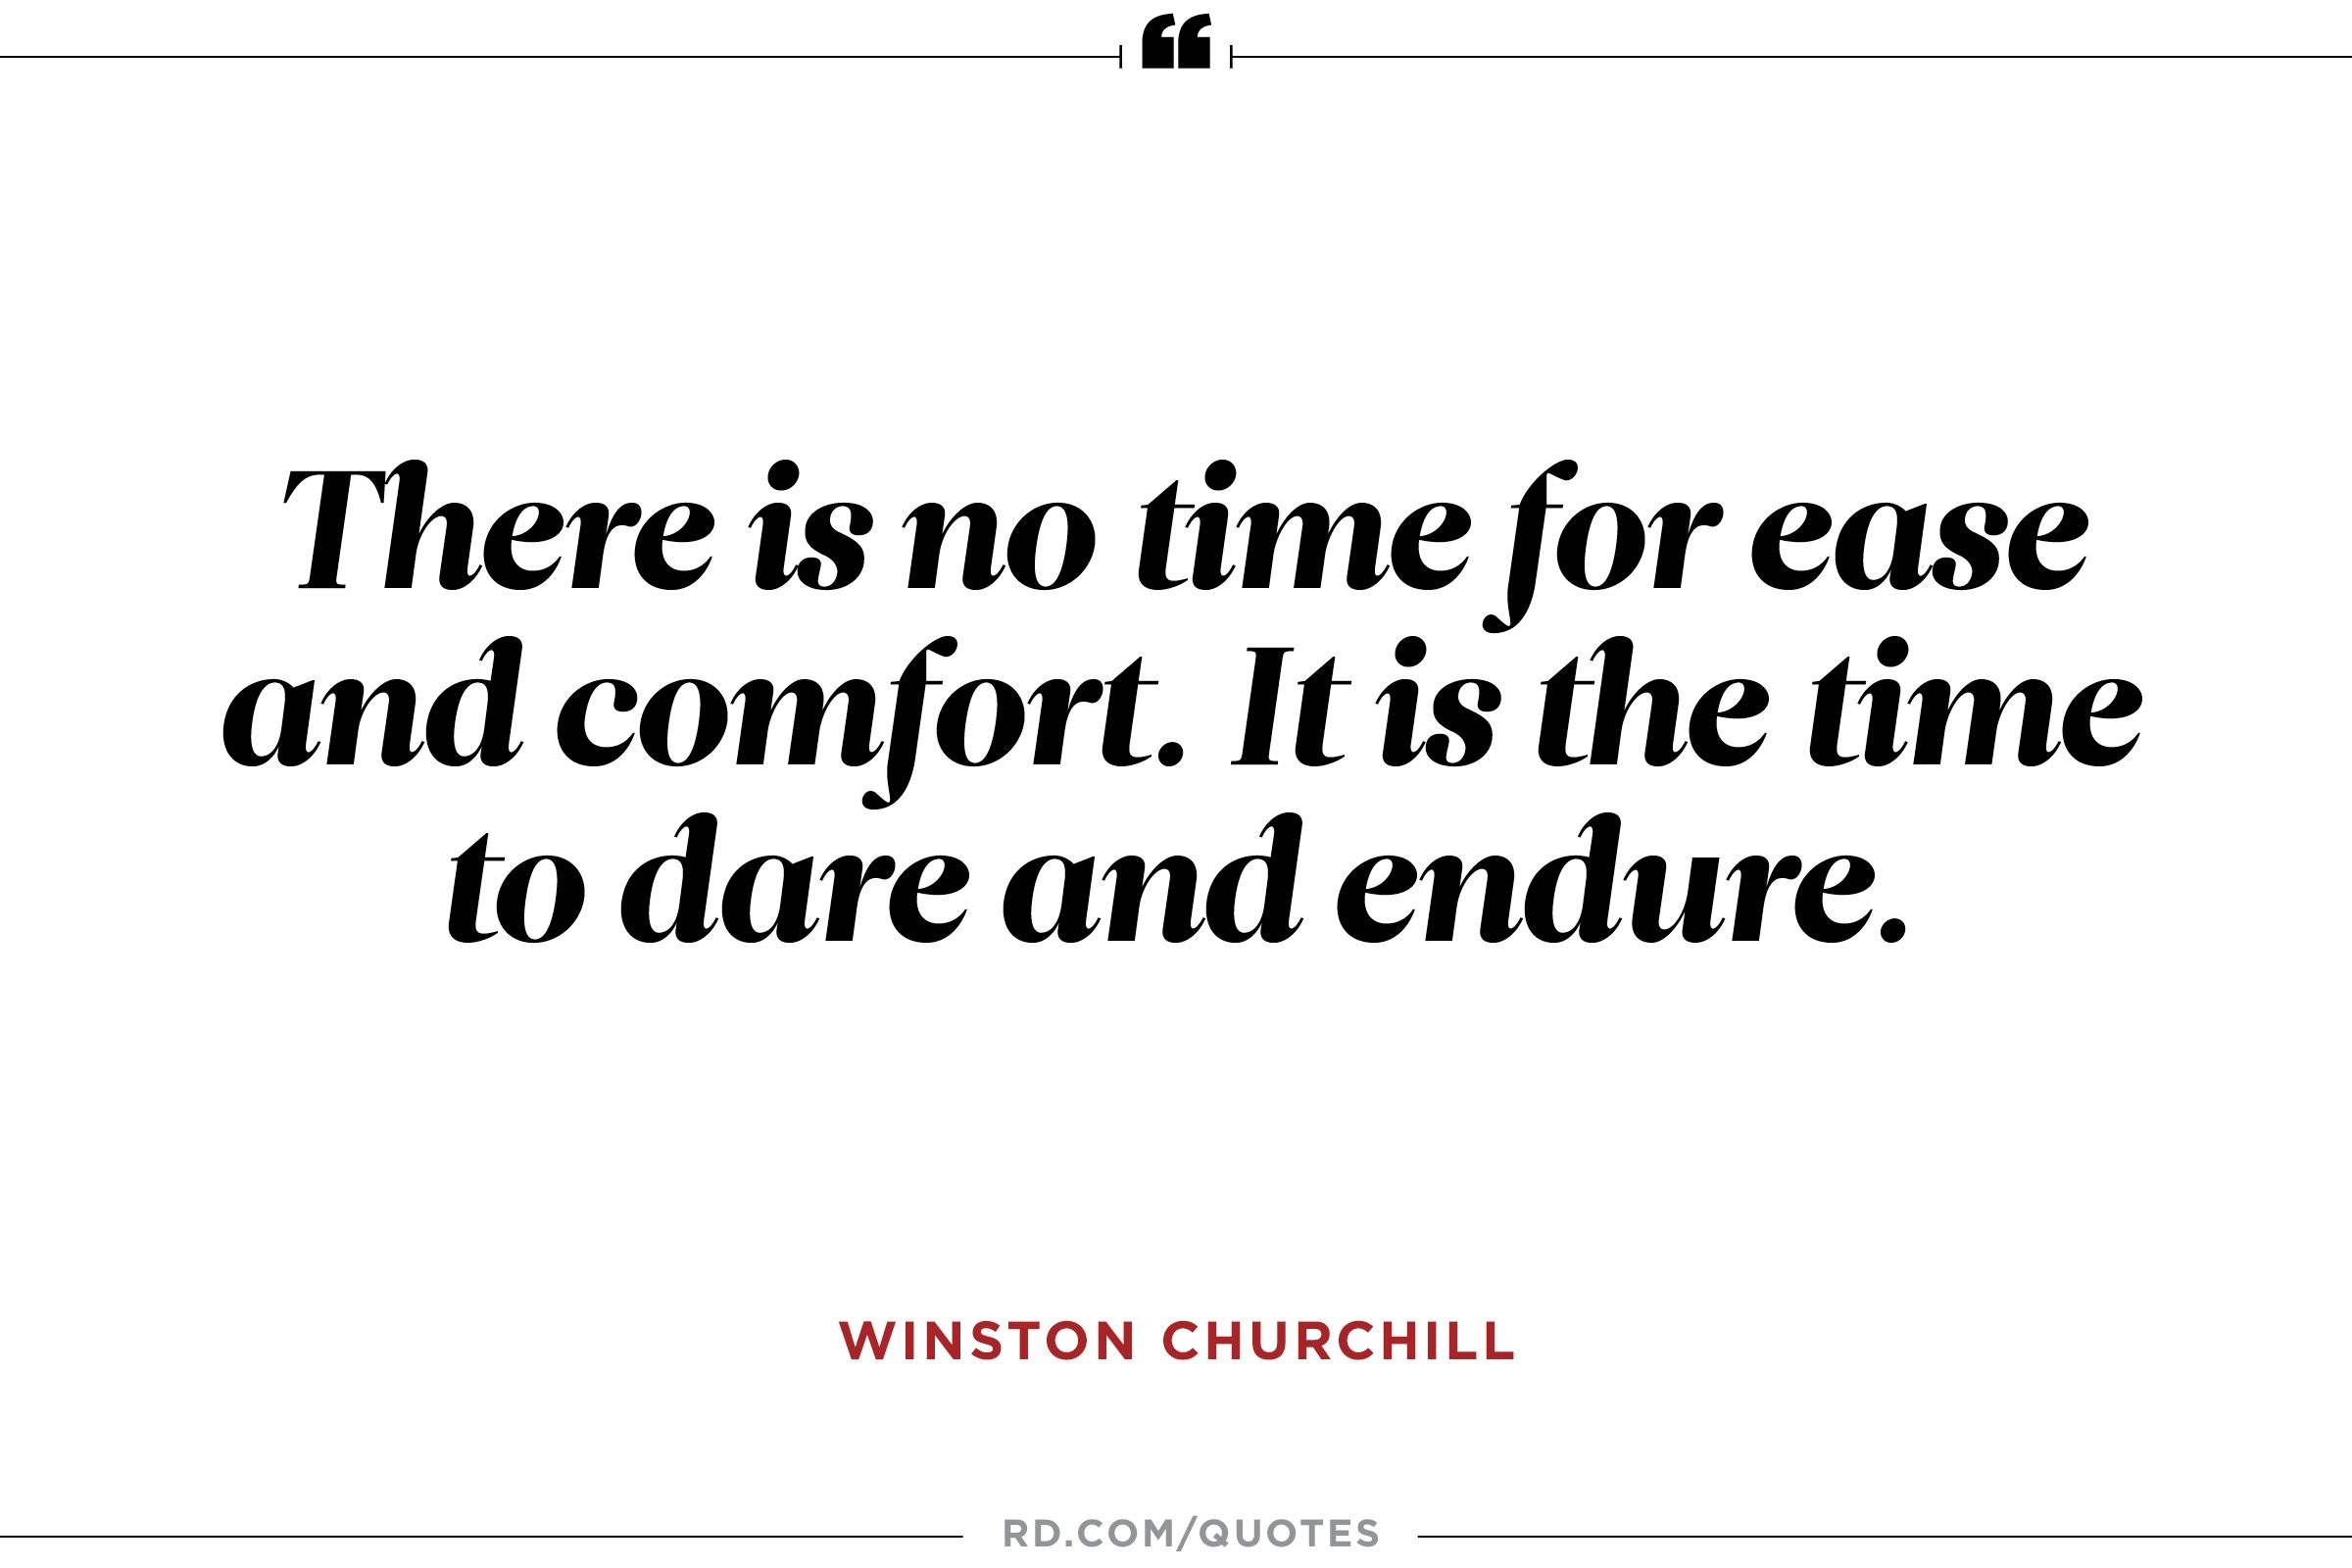 10 Winston Churchill Quotes That Get You to the Corner